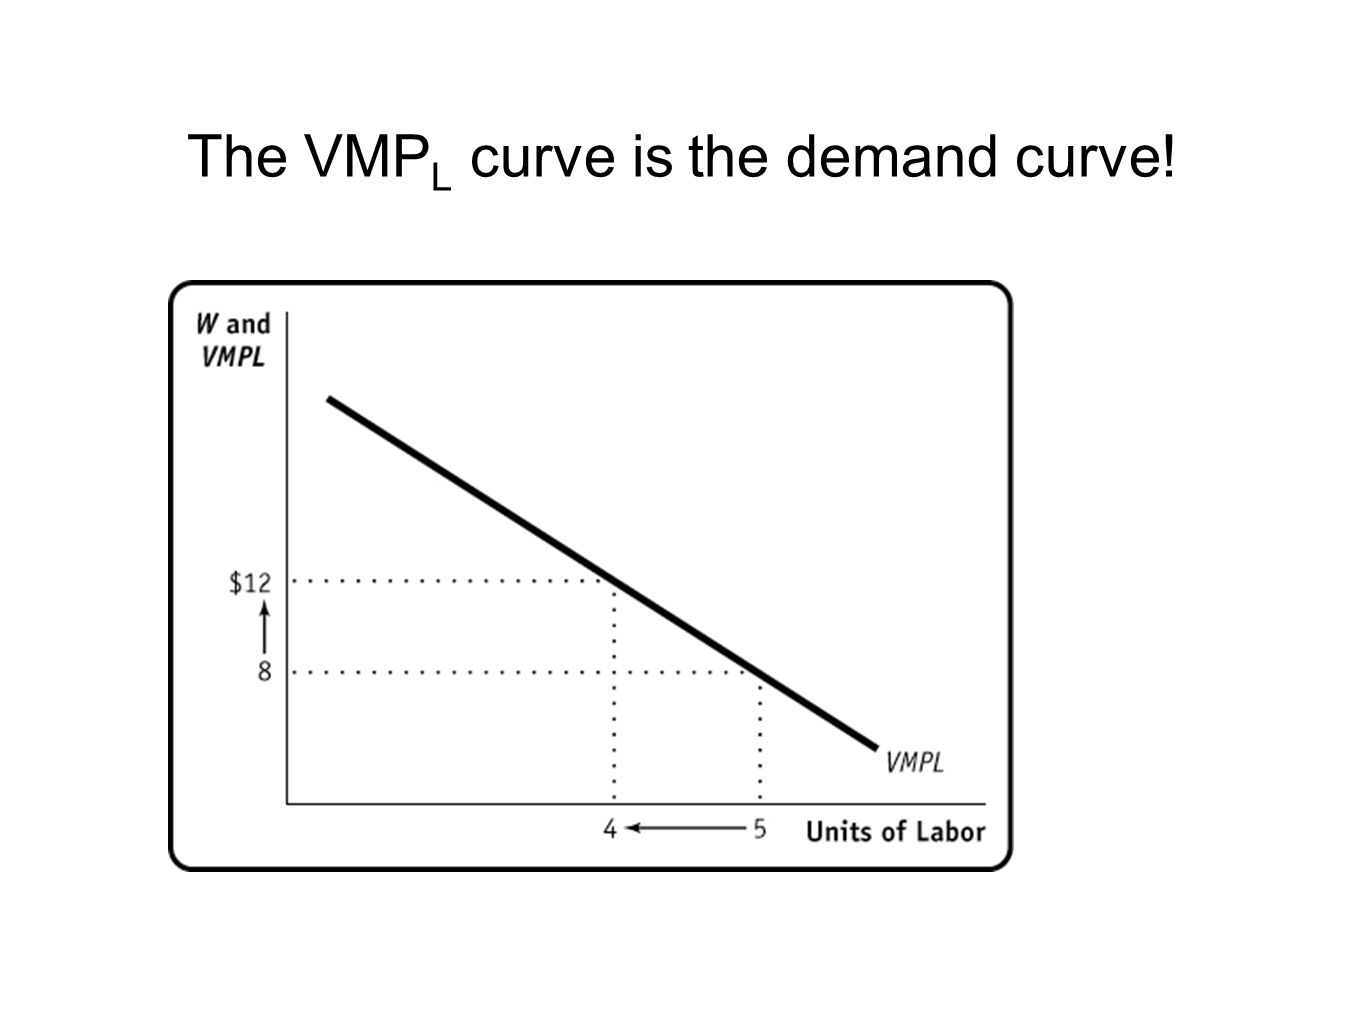 The VMPL curve is the demand curve!